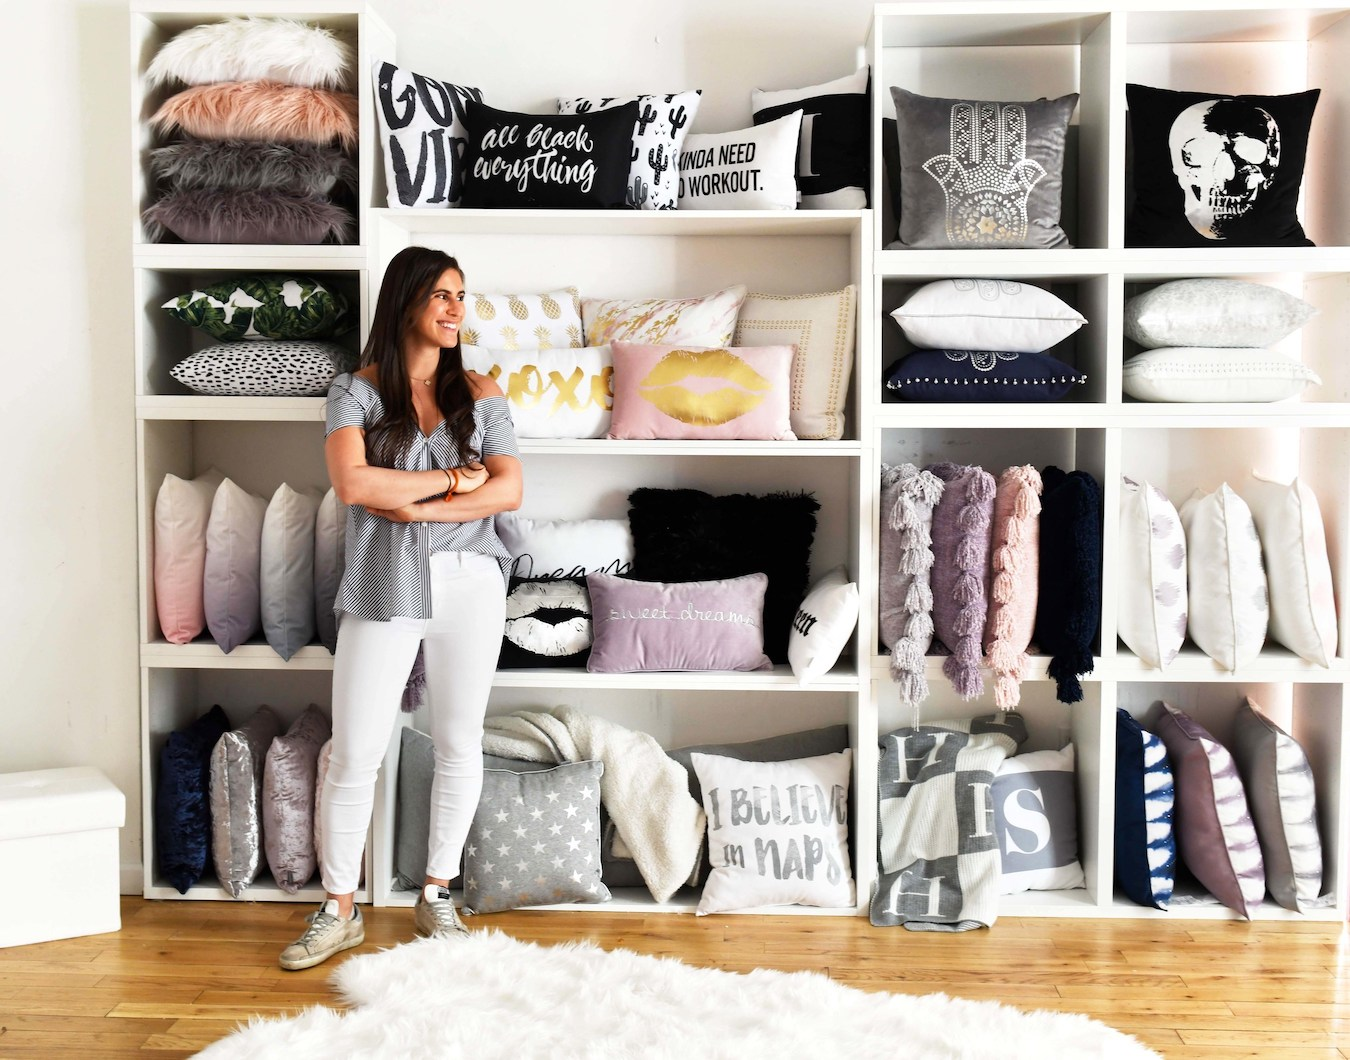 Online apartment and dorm bedding, furniture and décor retailer Dormify has secured an undisclosed investment from equity fund Clerisy.